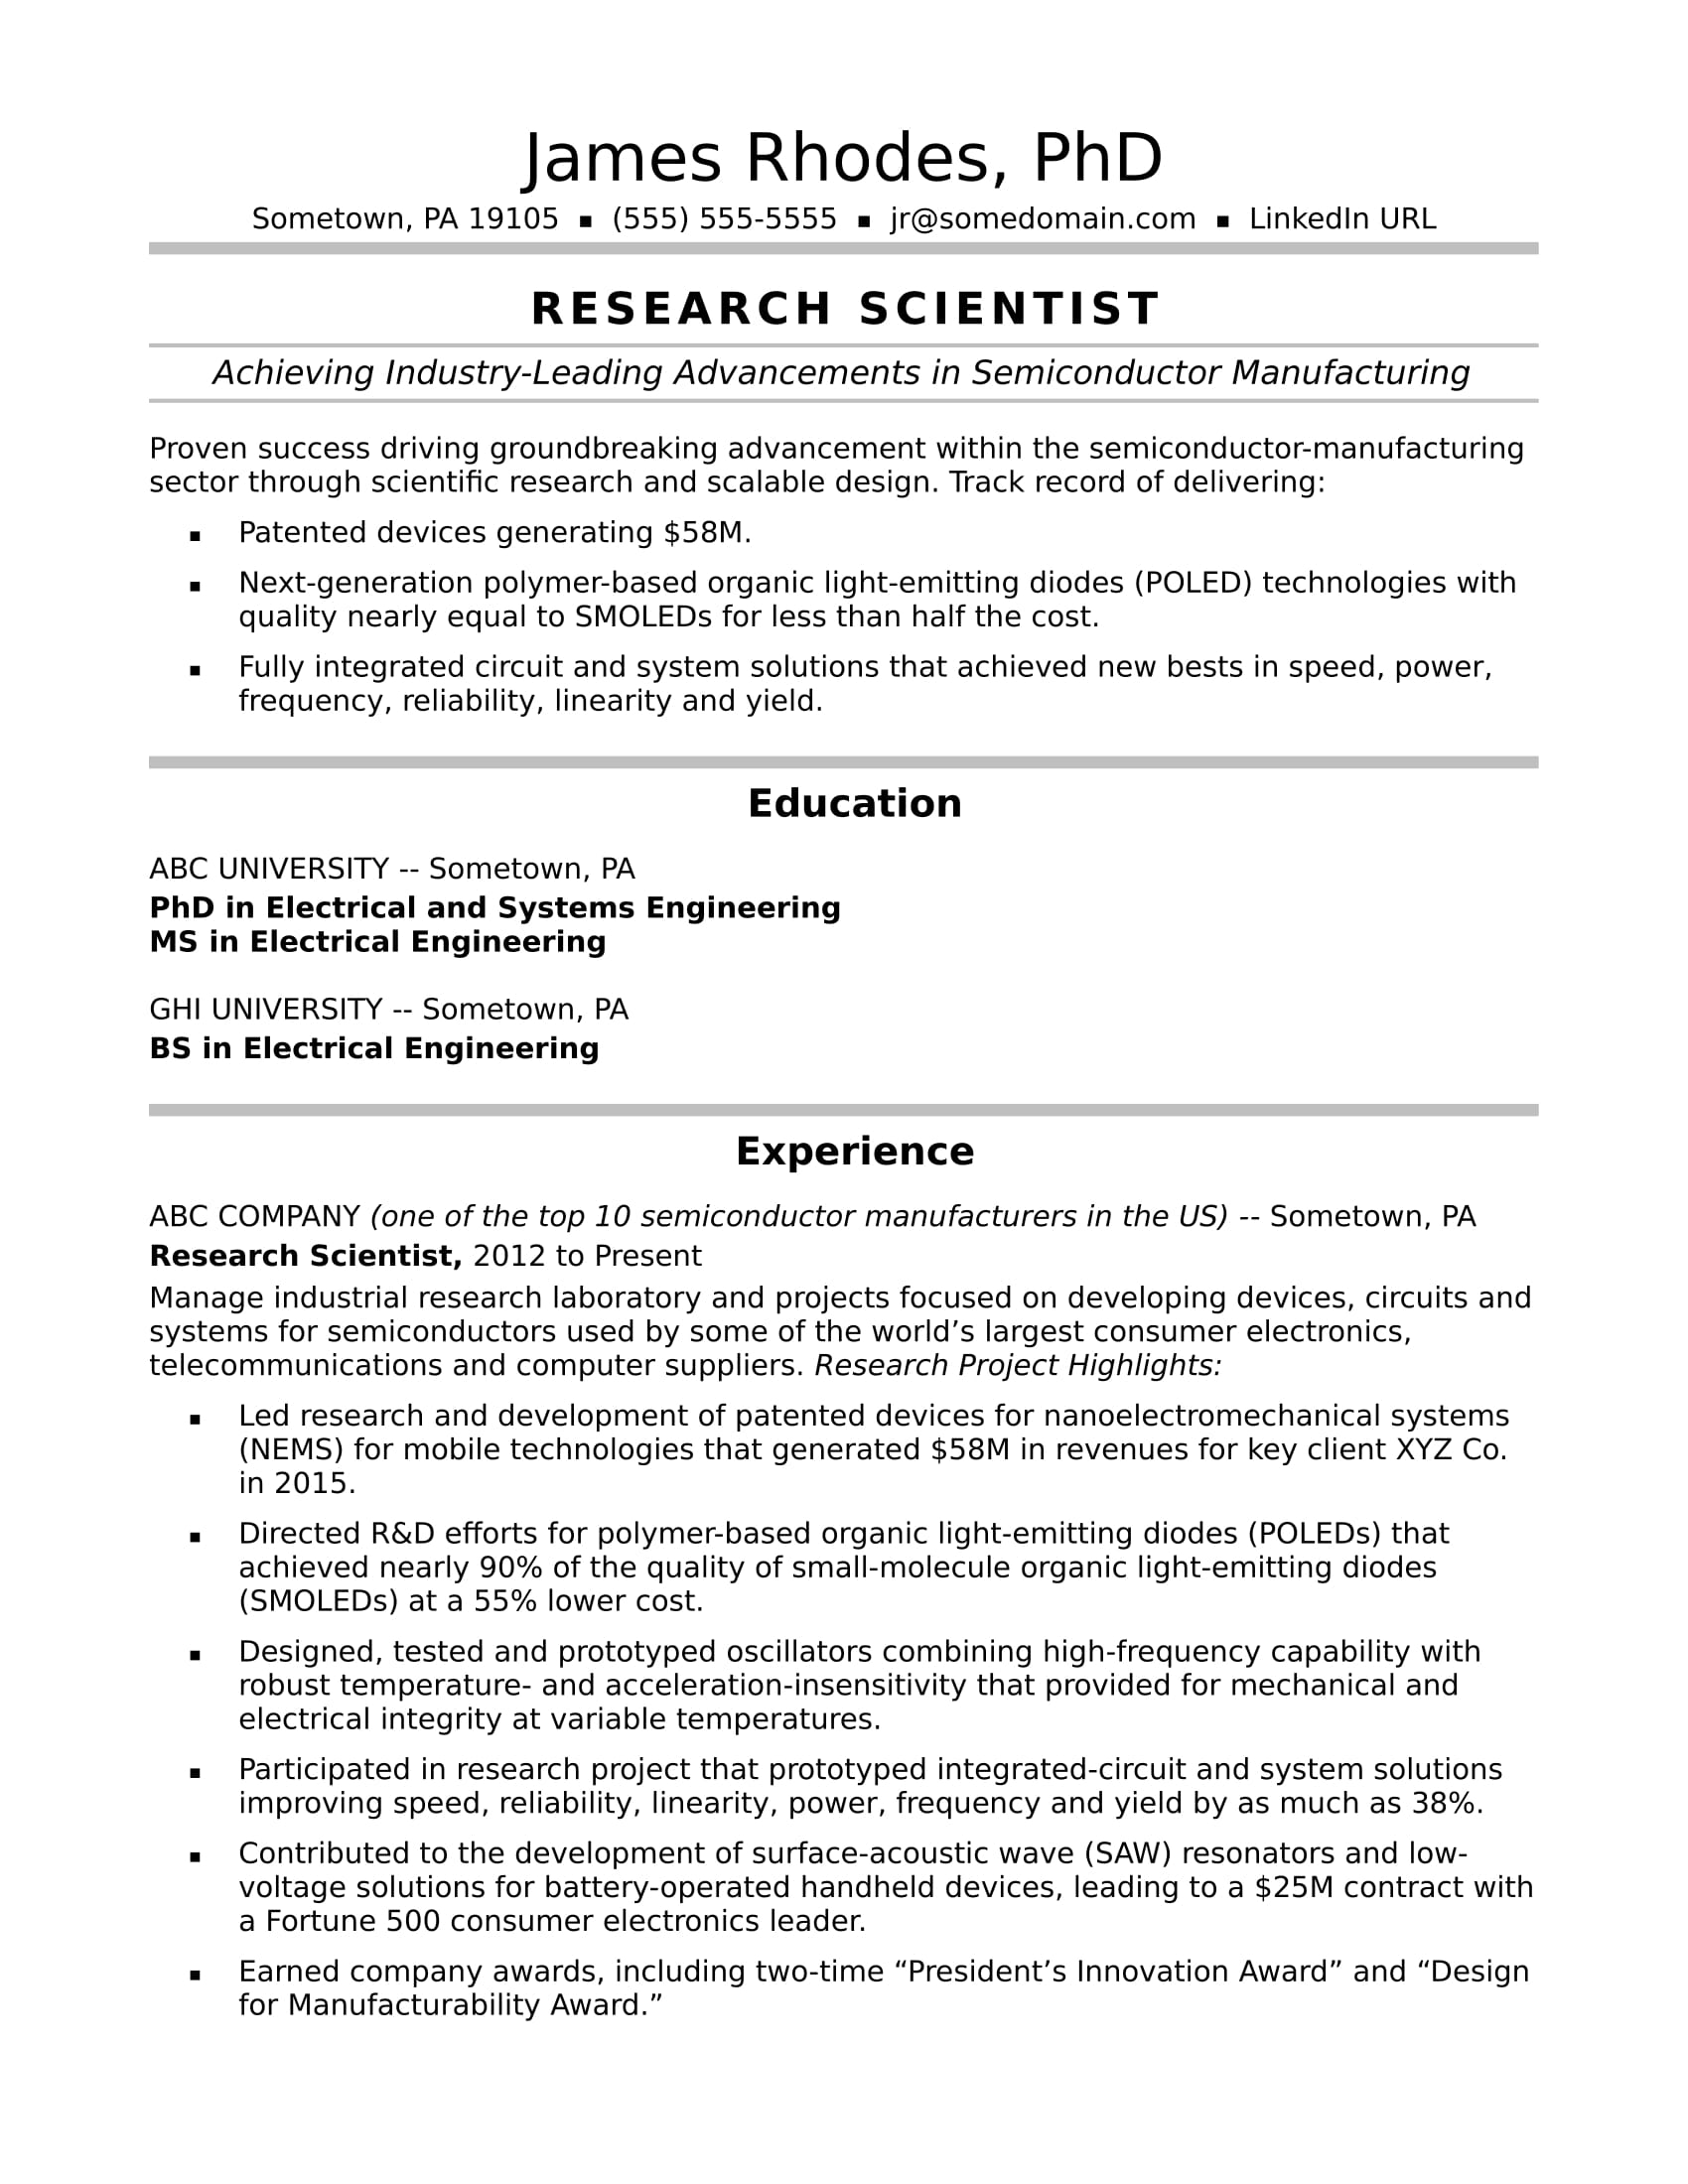 sample resume for a research scientist - Sample Resume With Research Experience